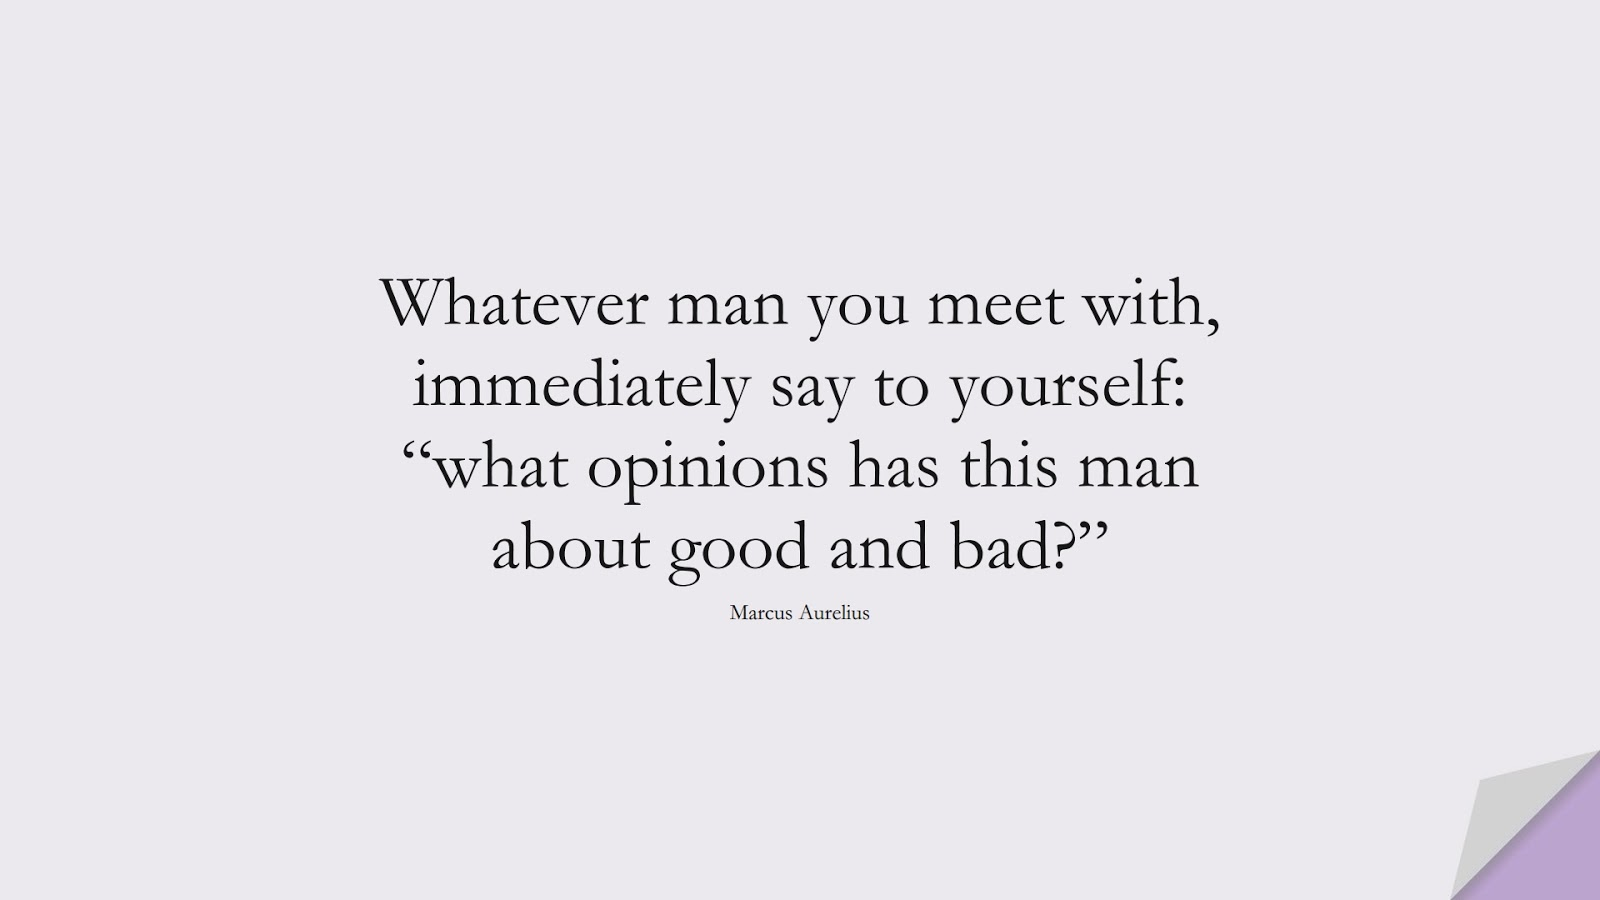 """Whatever man you meet with, immediately say to yourself: """"what opinions has this man about good and bad?"""" (Marcus Aurelius);  #MarcusAureliusQuotes"""